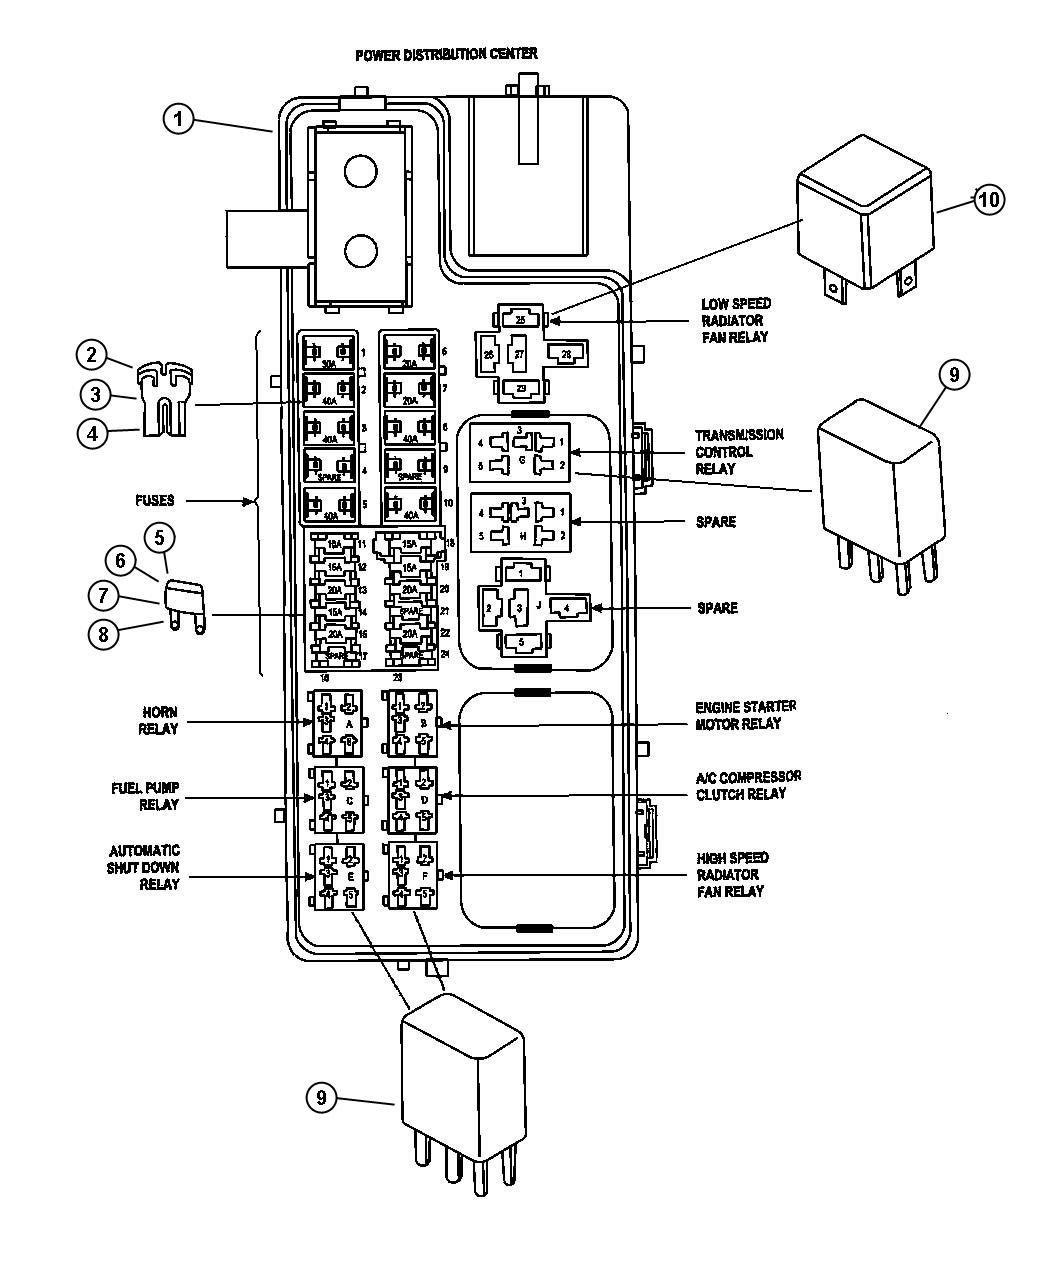 hight resolution of 2007 pt cruiser fuse diagram another blog about wiring diagram u2022 rh ok2 infoservice ru 2005